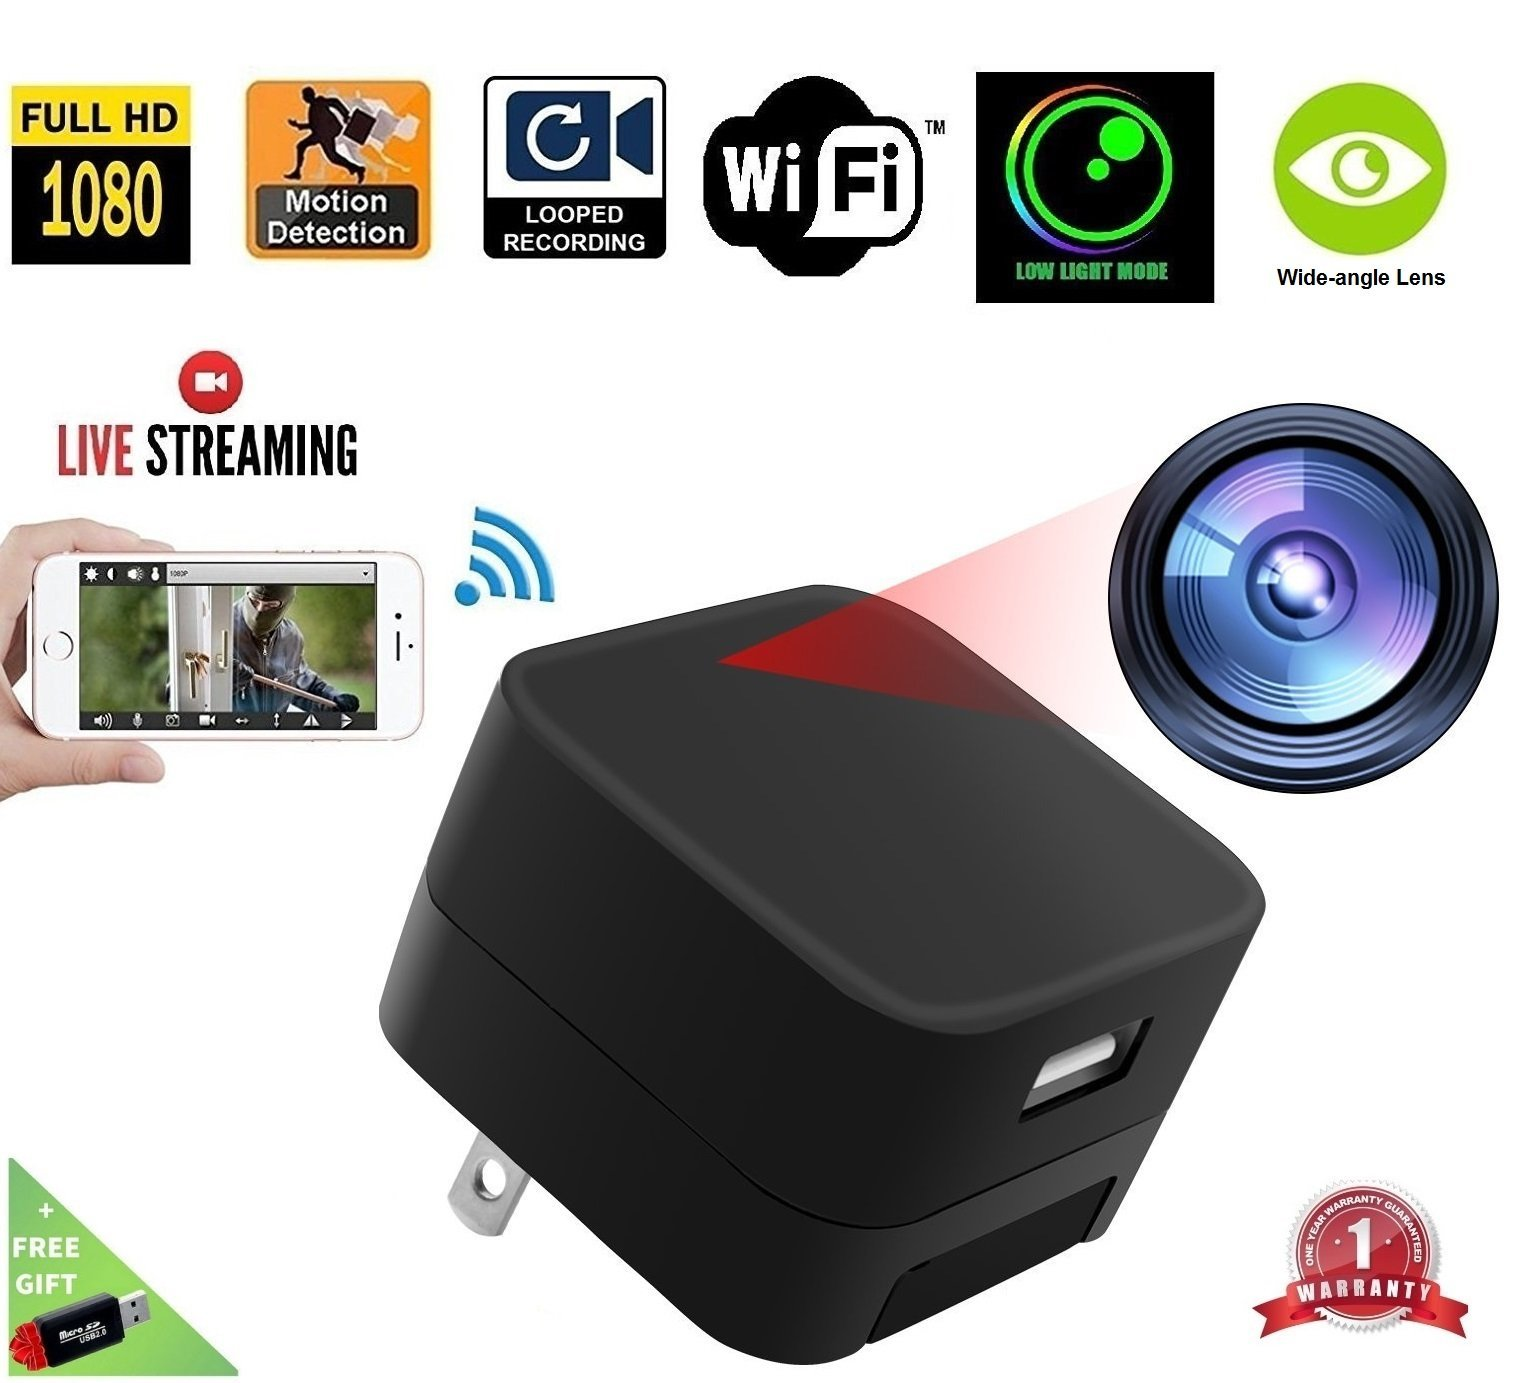 1080P USB Charger Camera WiFi – DENT Products HD Live Streaming Video Camcorder with Motion Detection, Pet Nanny Cam, USB AC Wall Plug Adapter for phone, Remote View, support 128GB SD (4th GENERATION)